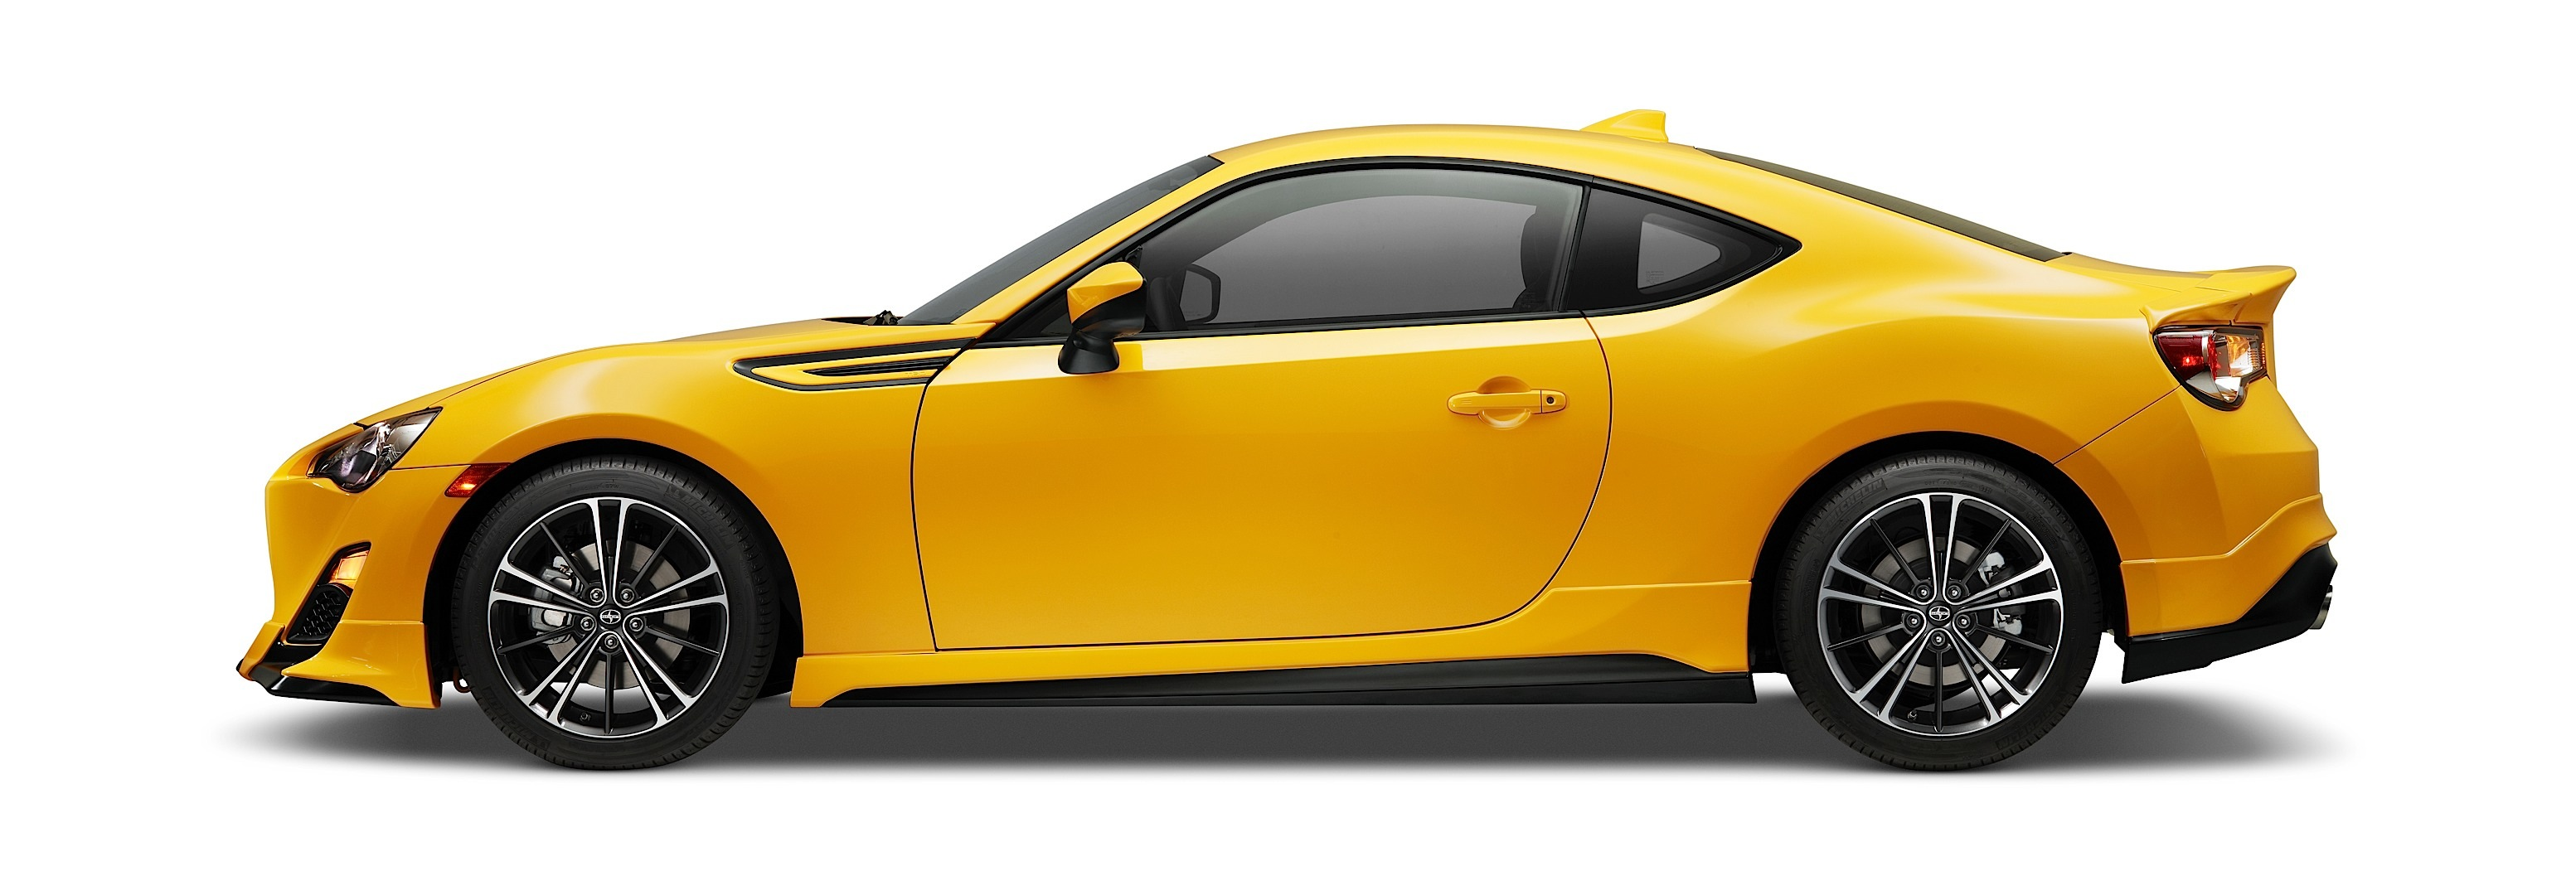 Scion Fr S Release Series Milks The Cow Price And Specs Autoevolution